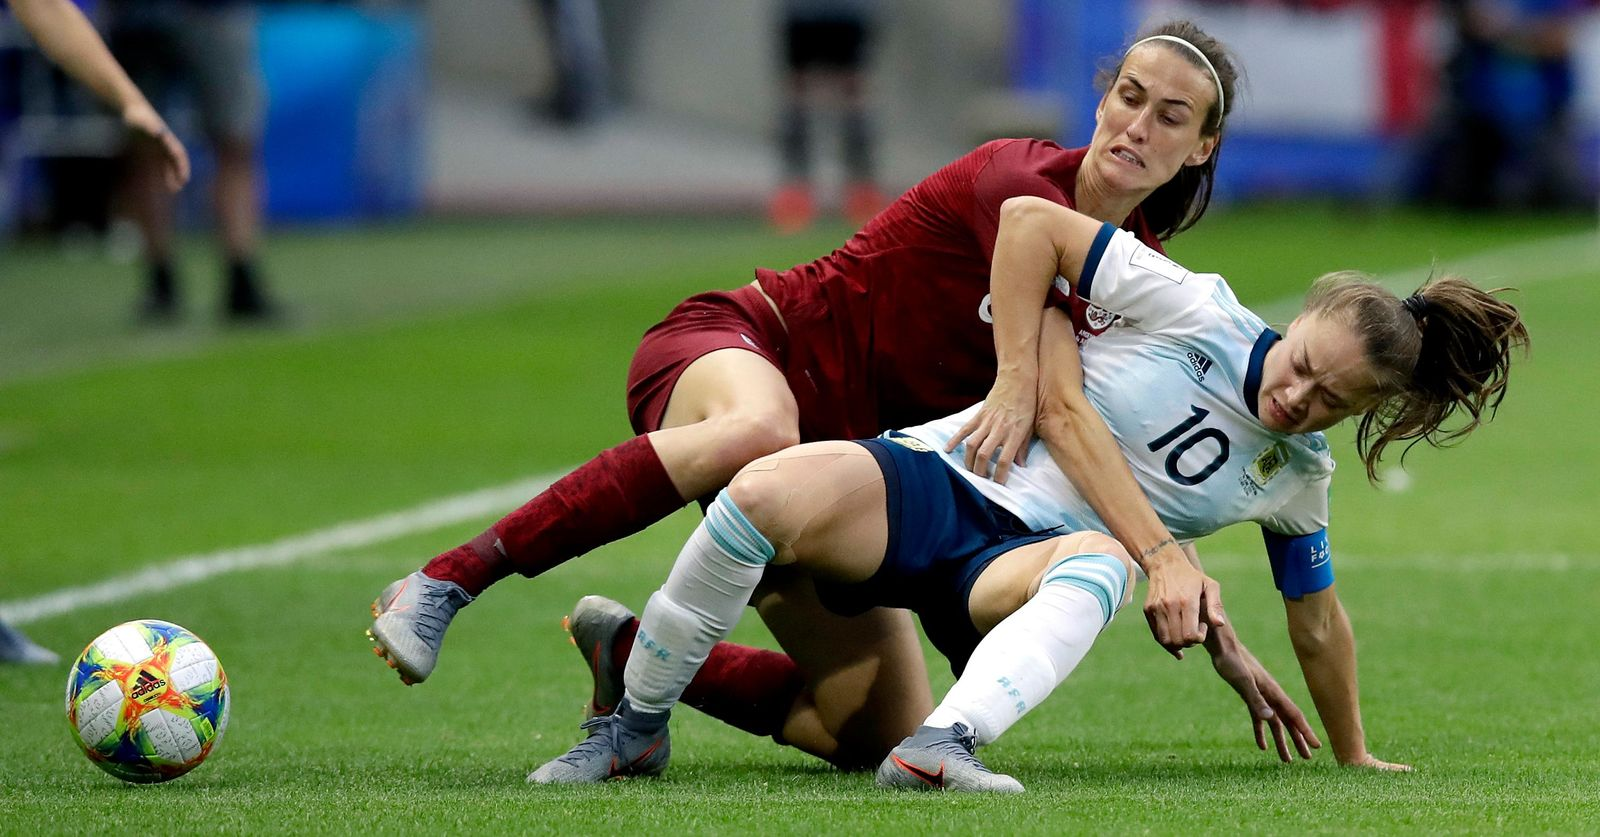 Argentina's Estefania Banini, left, and England's Jill Scott, right, challenge for the ball during the Women's World Cup Group D soccer match between England and Argentina at the Stade Oceane in Le Havre, France, Friday, June 14, 2019. (AP Photo/Alessandra Tarantino)